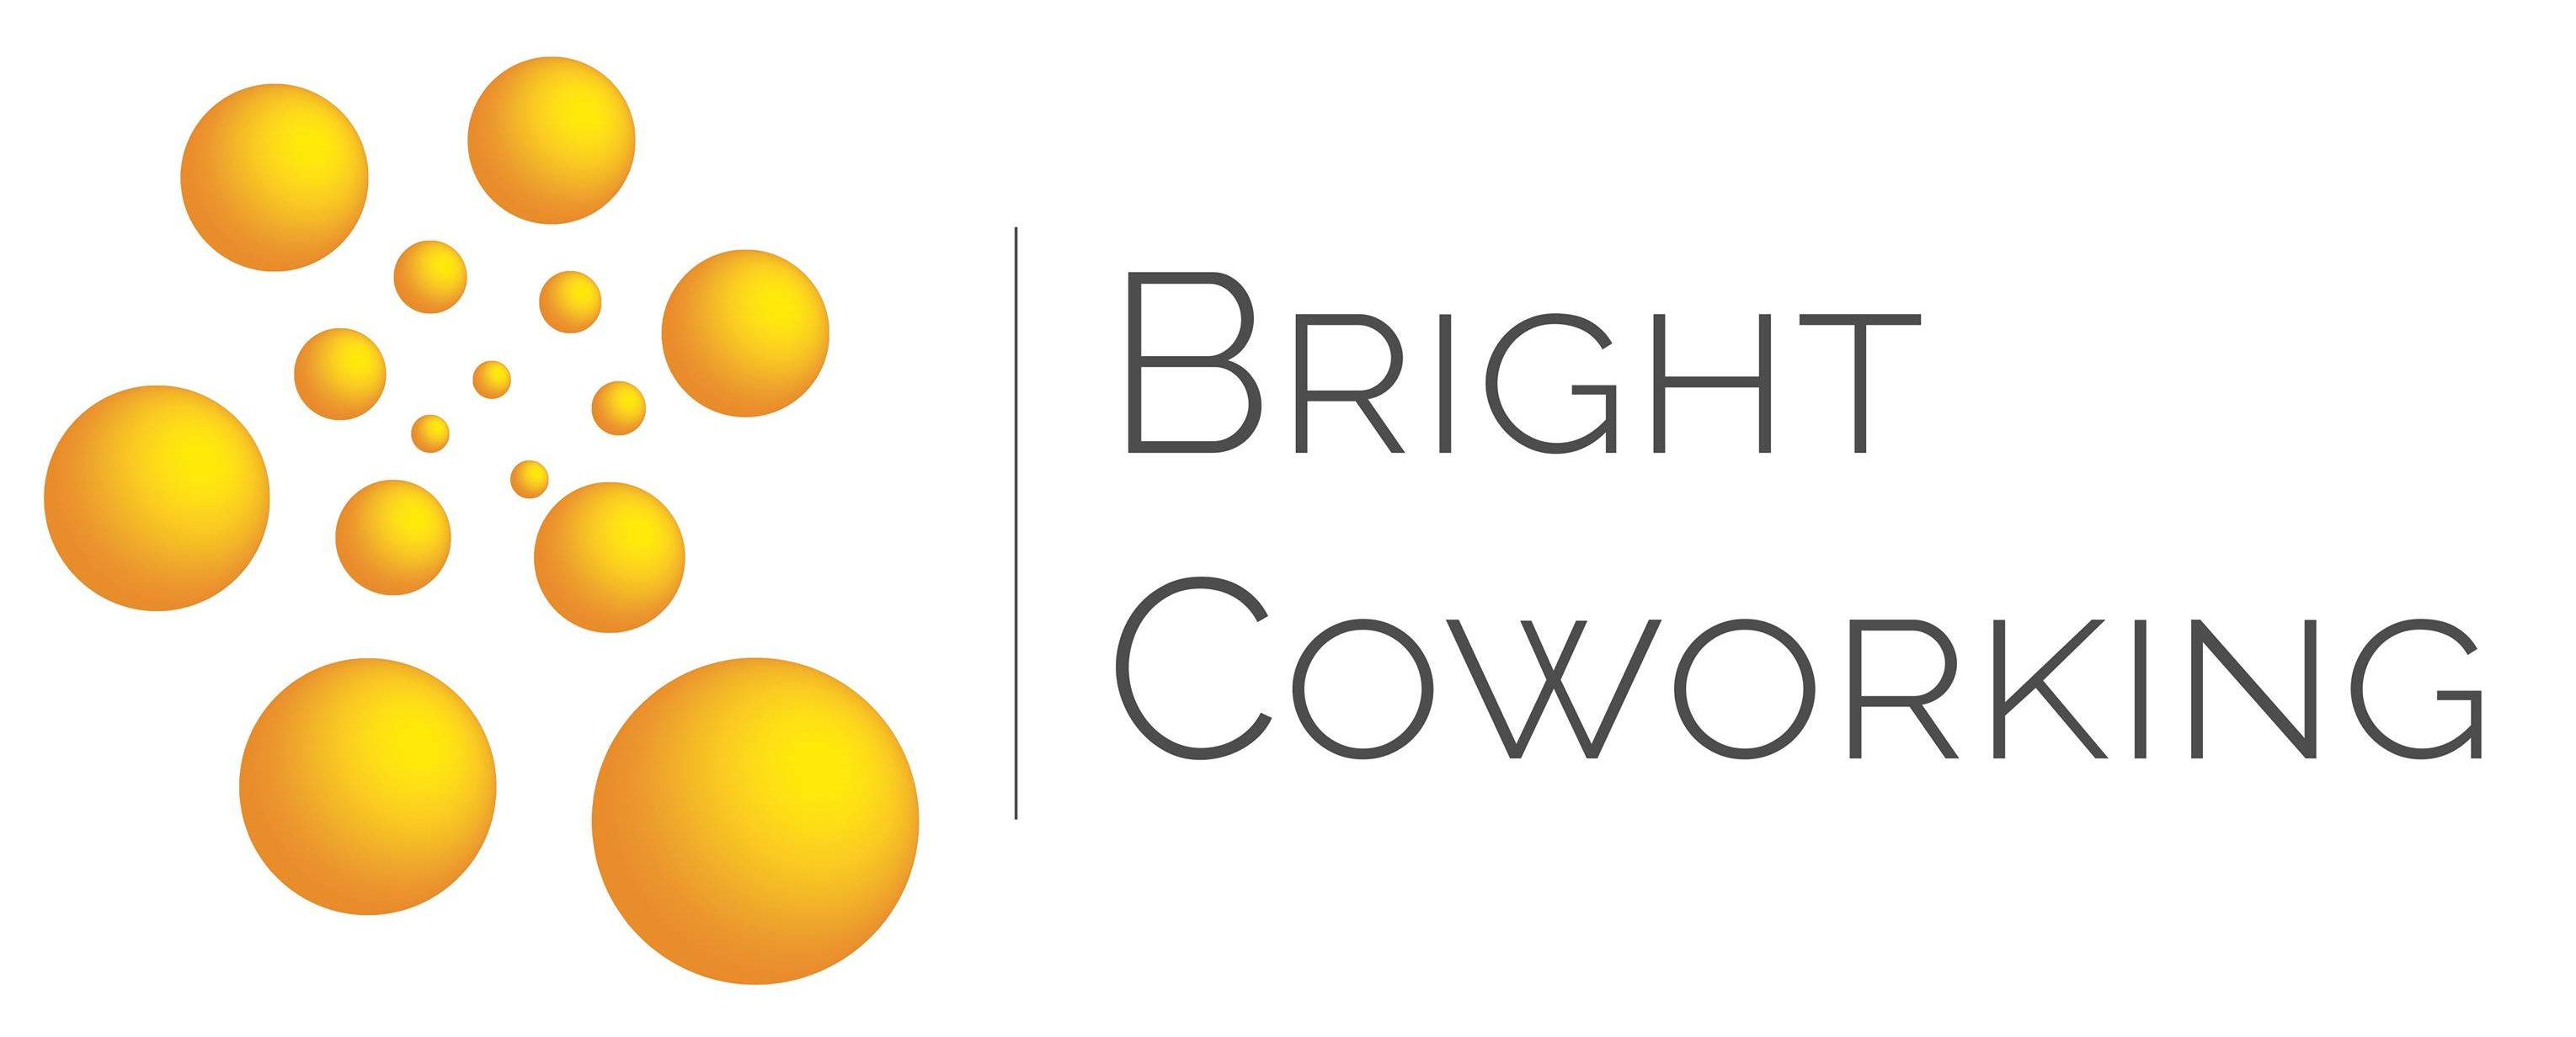 Bright Coworking